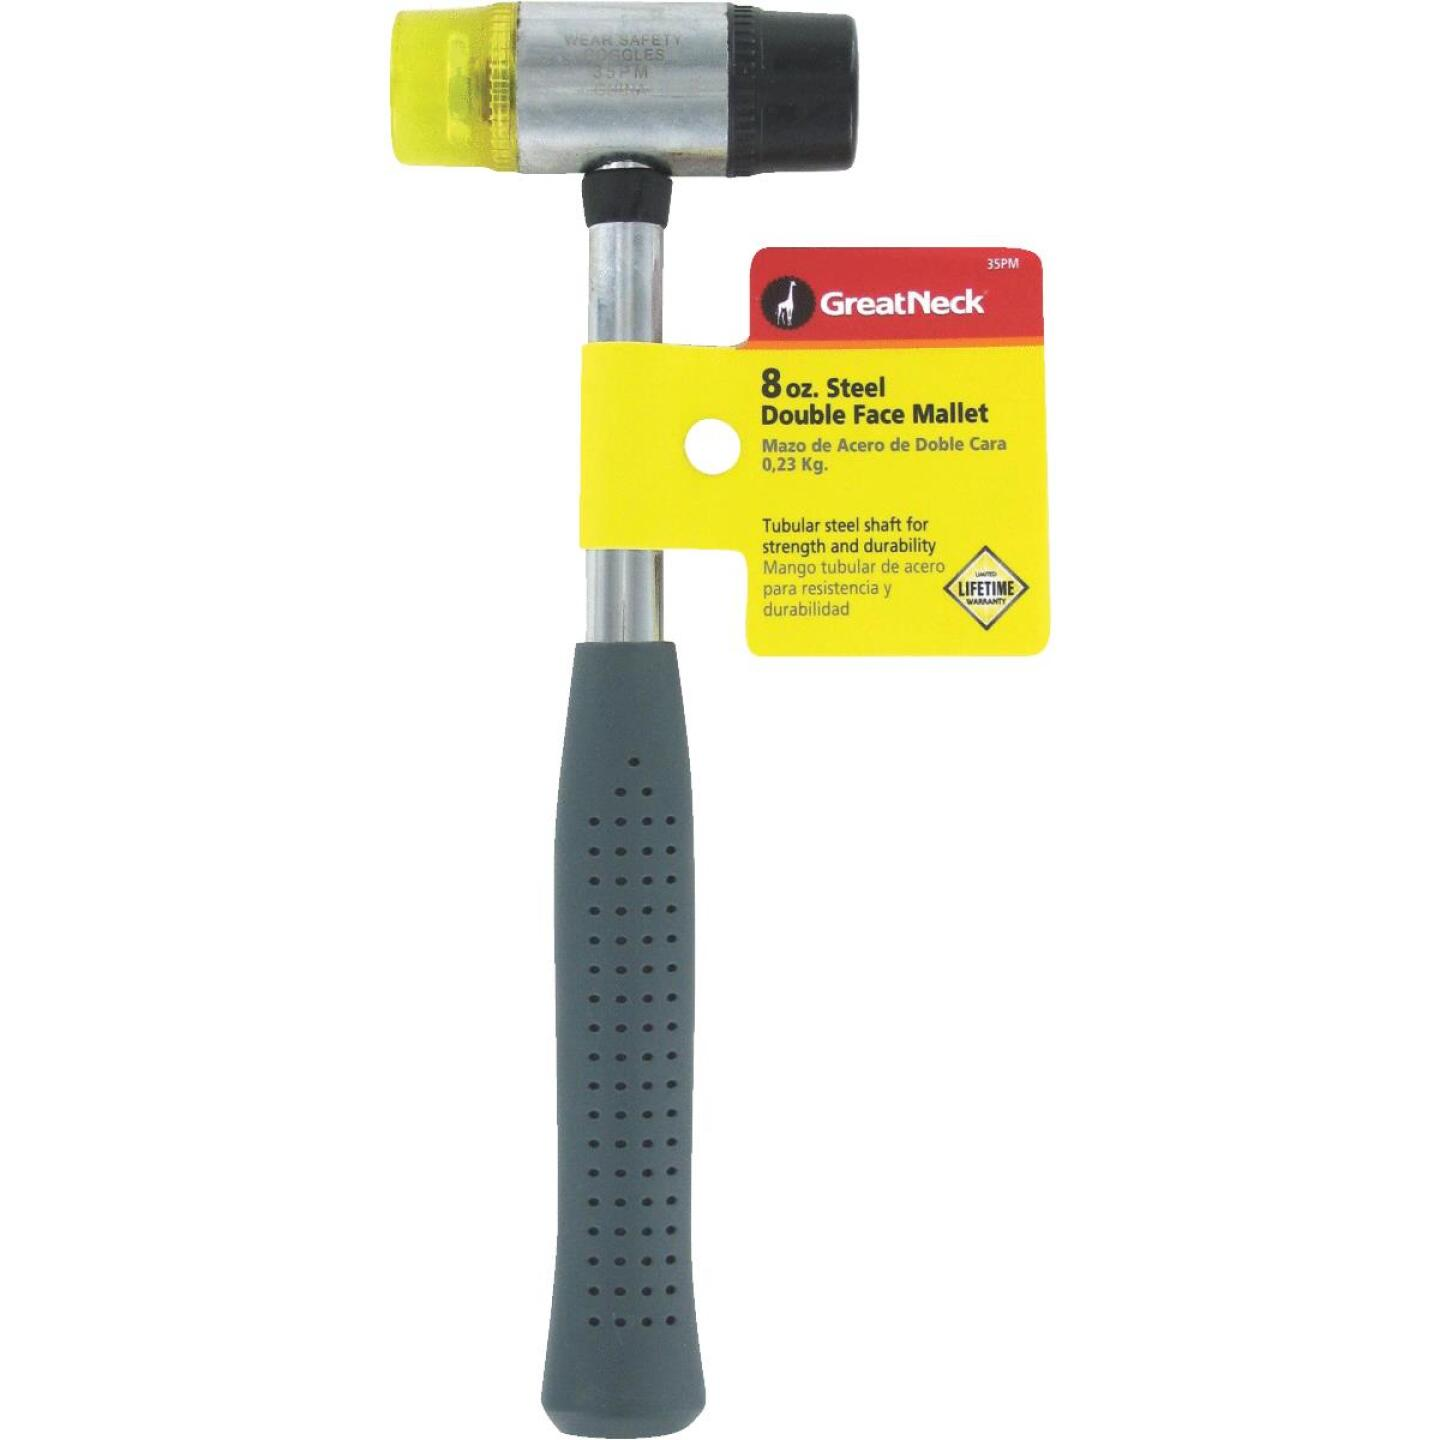 Great Neck 8 Oz. Plastic/Rubber Mallet with Tubular Steel Handle Image 2